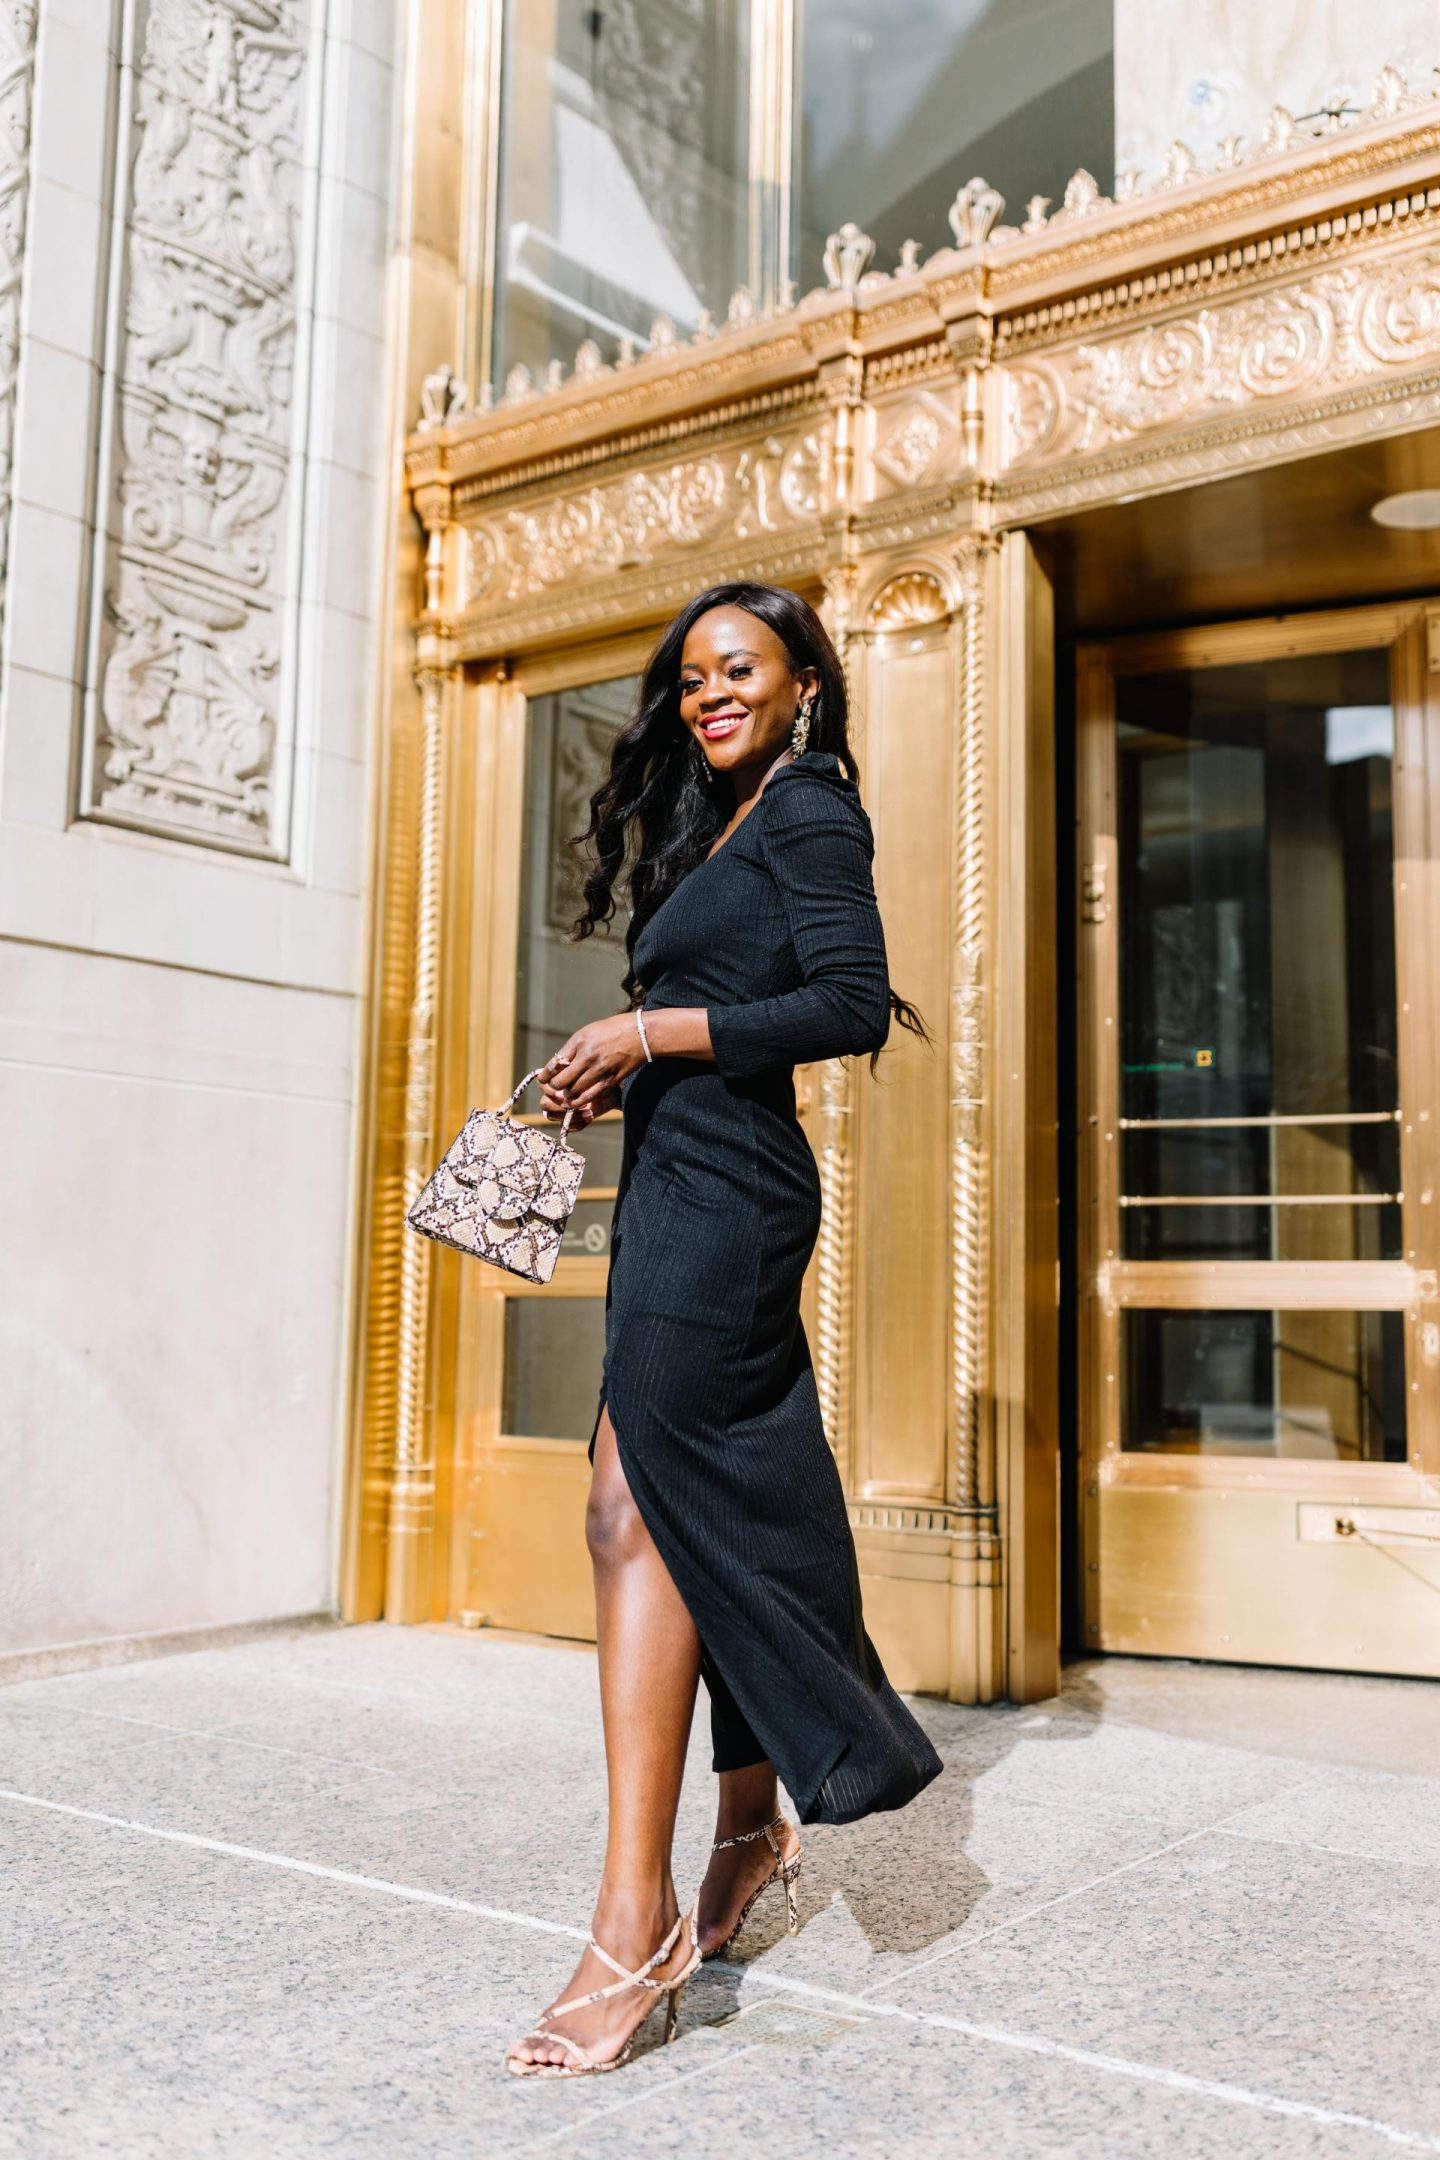 Cranberry Tantrums ; How to make your affordable outfits look expensive